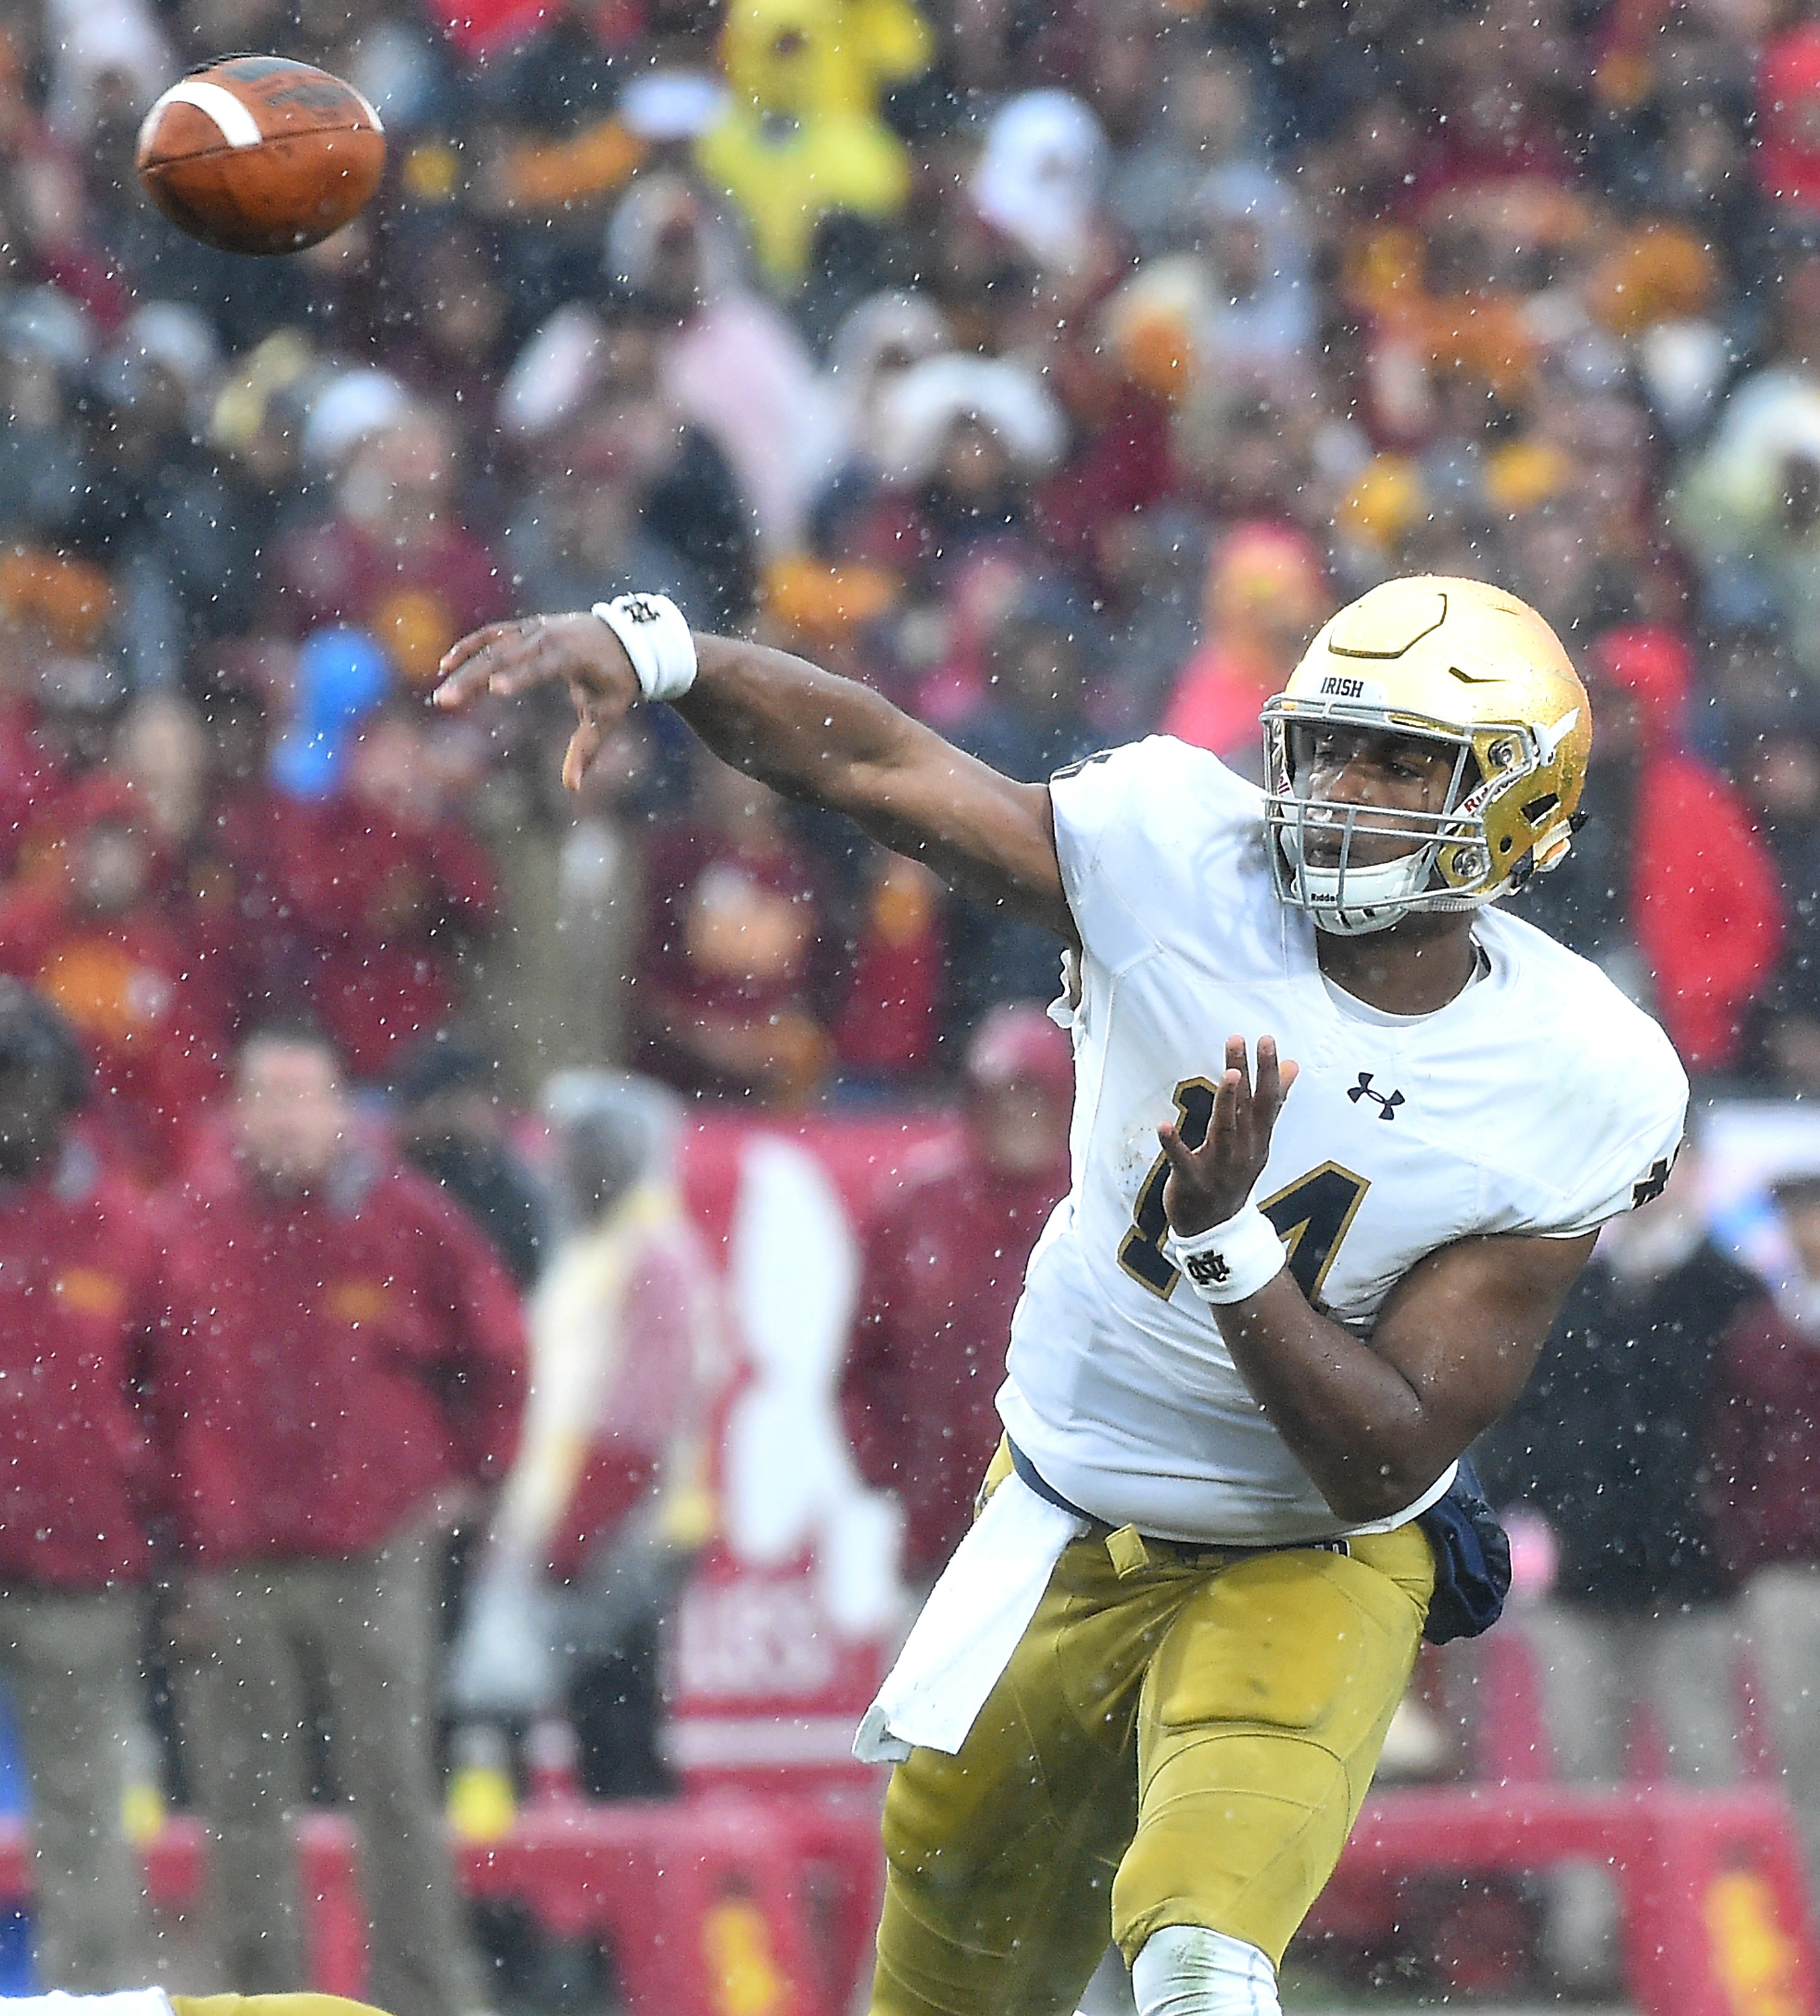 DeShone Kizer of the Notre Dame Fighting Irish. (Photo by Jayne Kamin-Oncea/Getty Images)